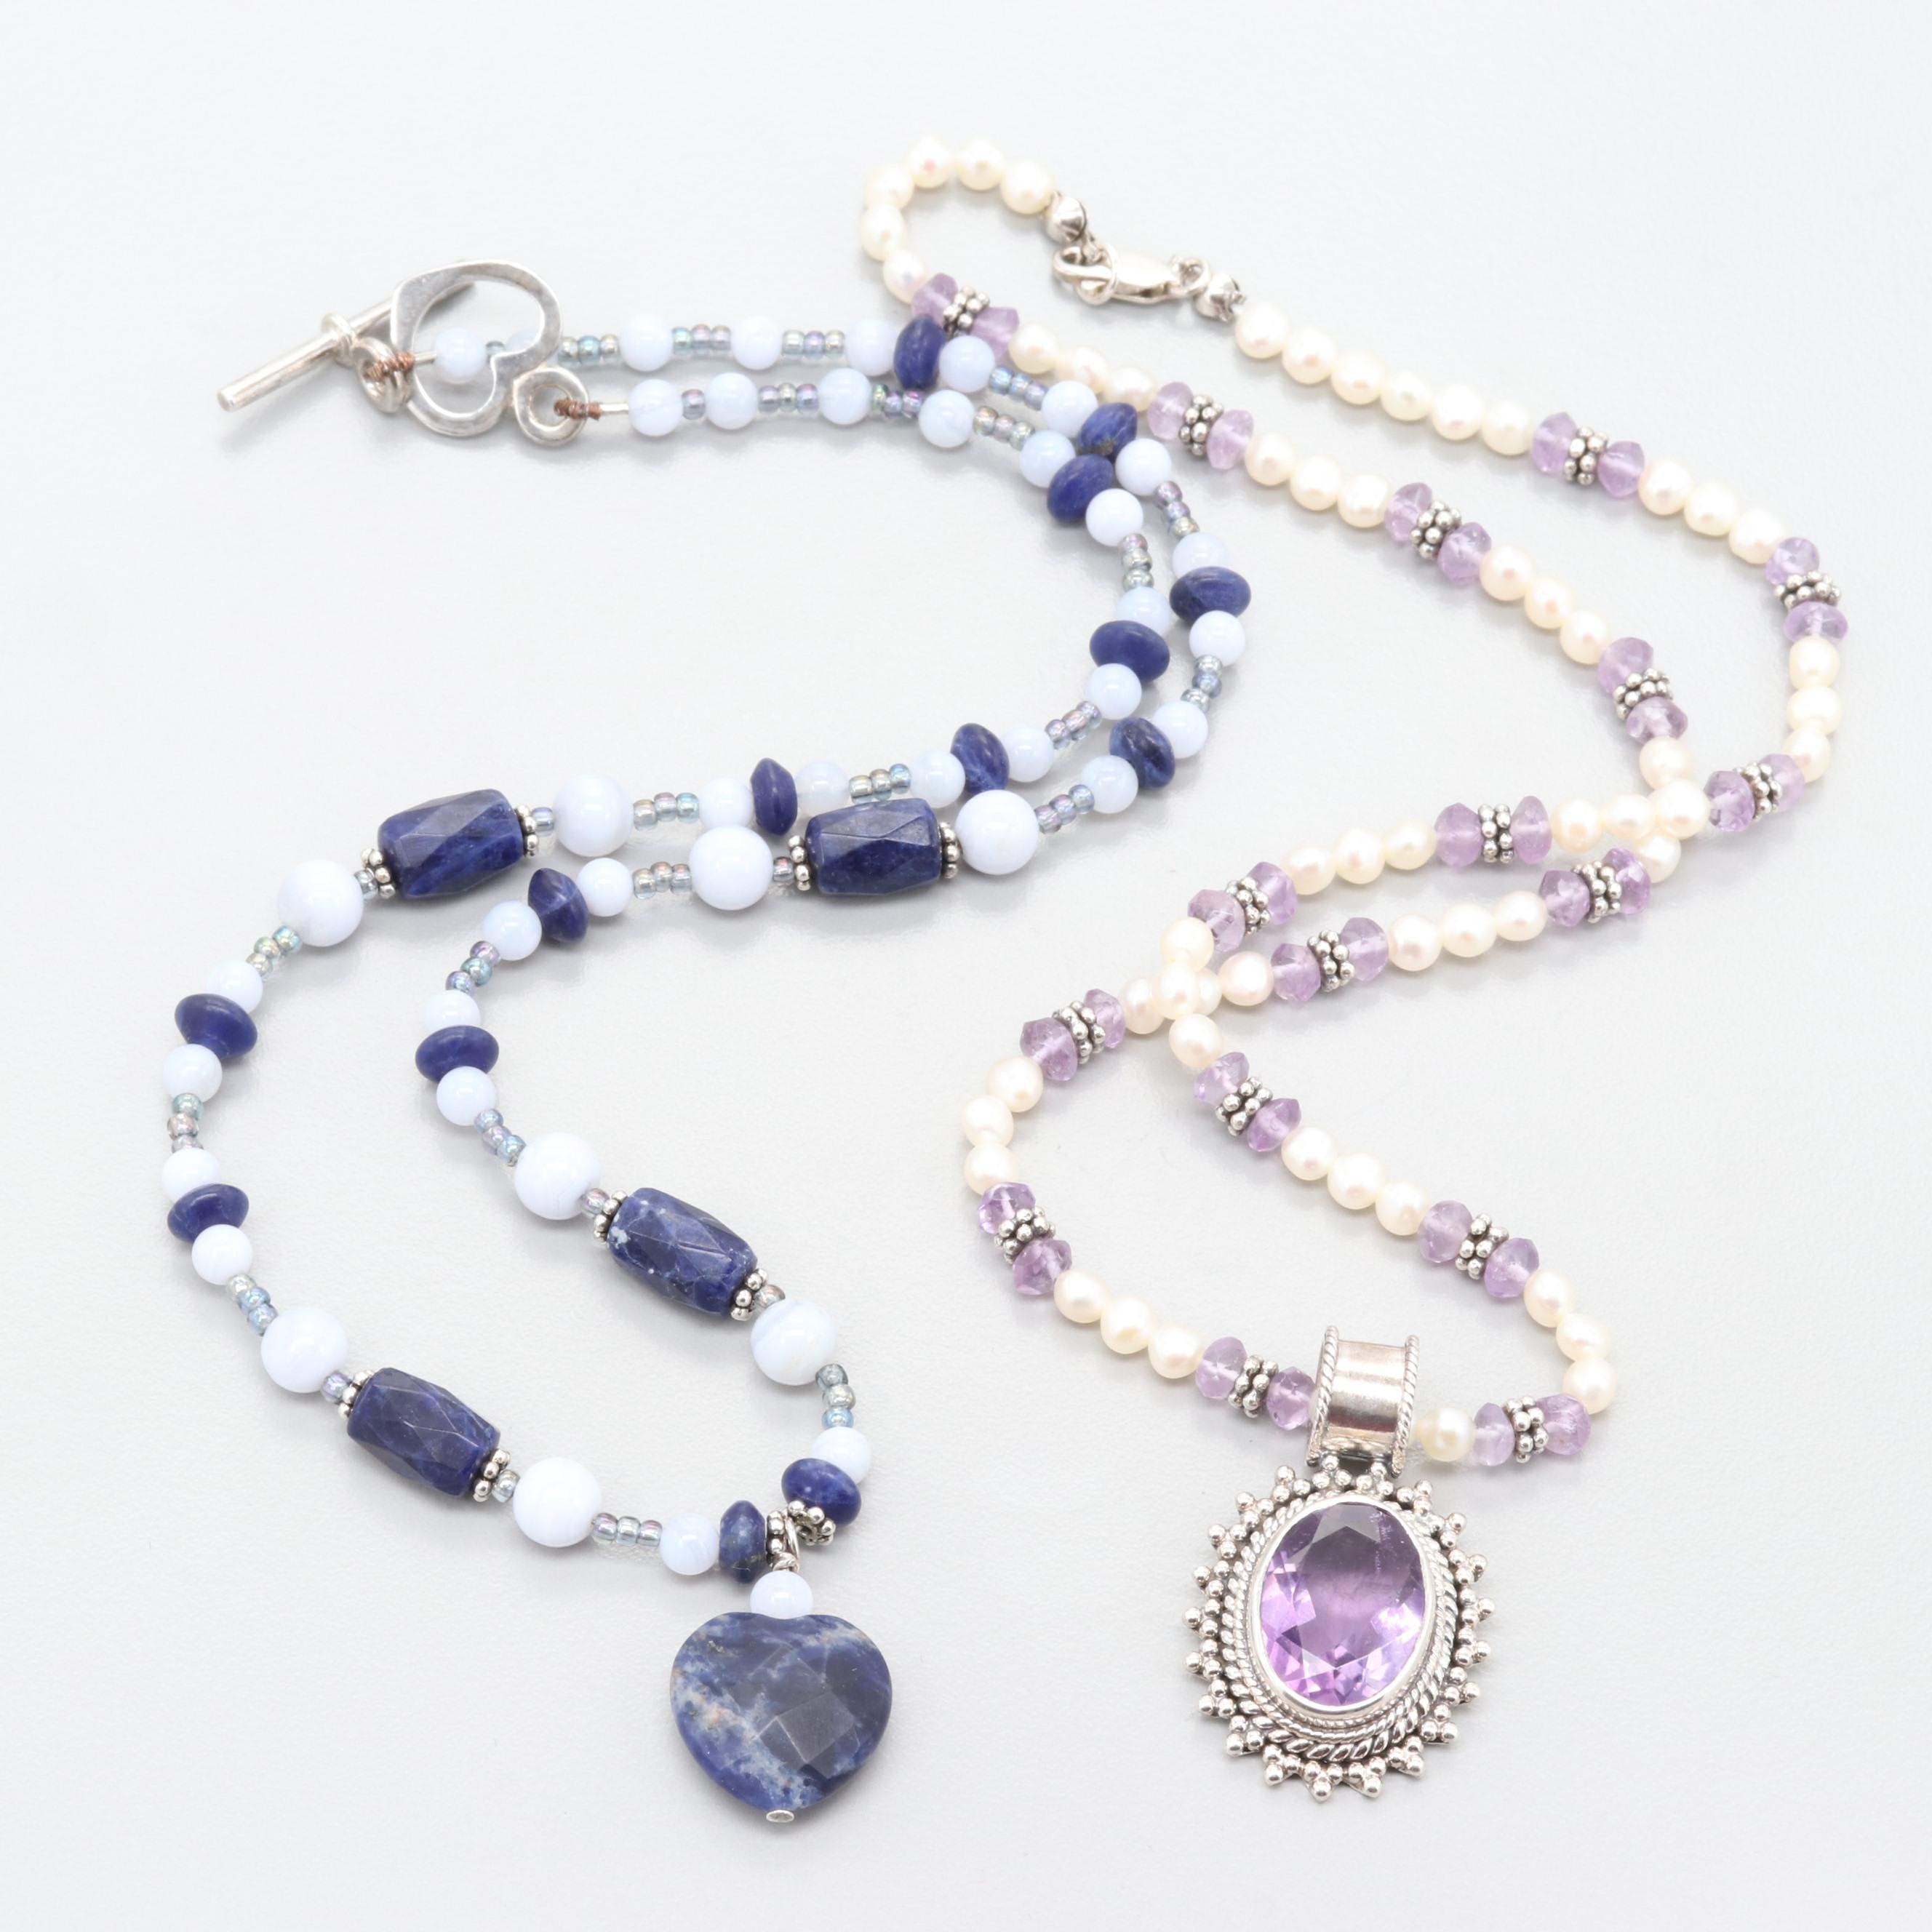 Sterling Silver Amethyst, Cultured Pearl, and Lace Agate Bead Necklaces